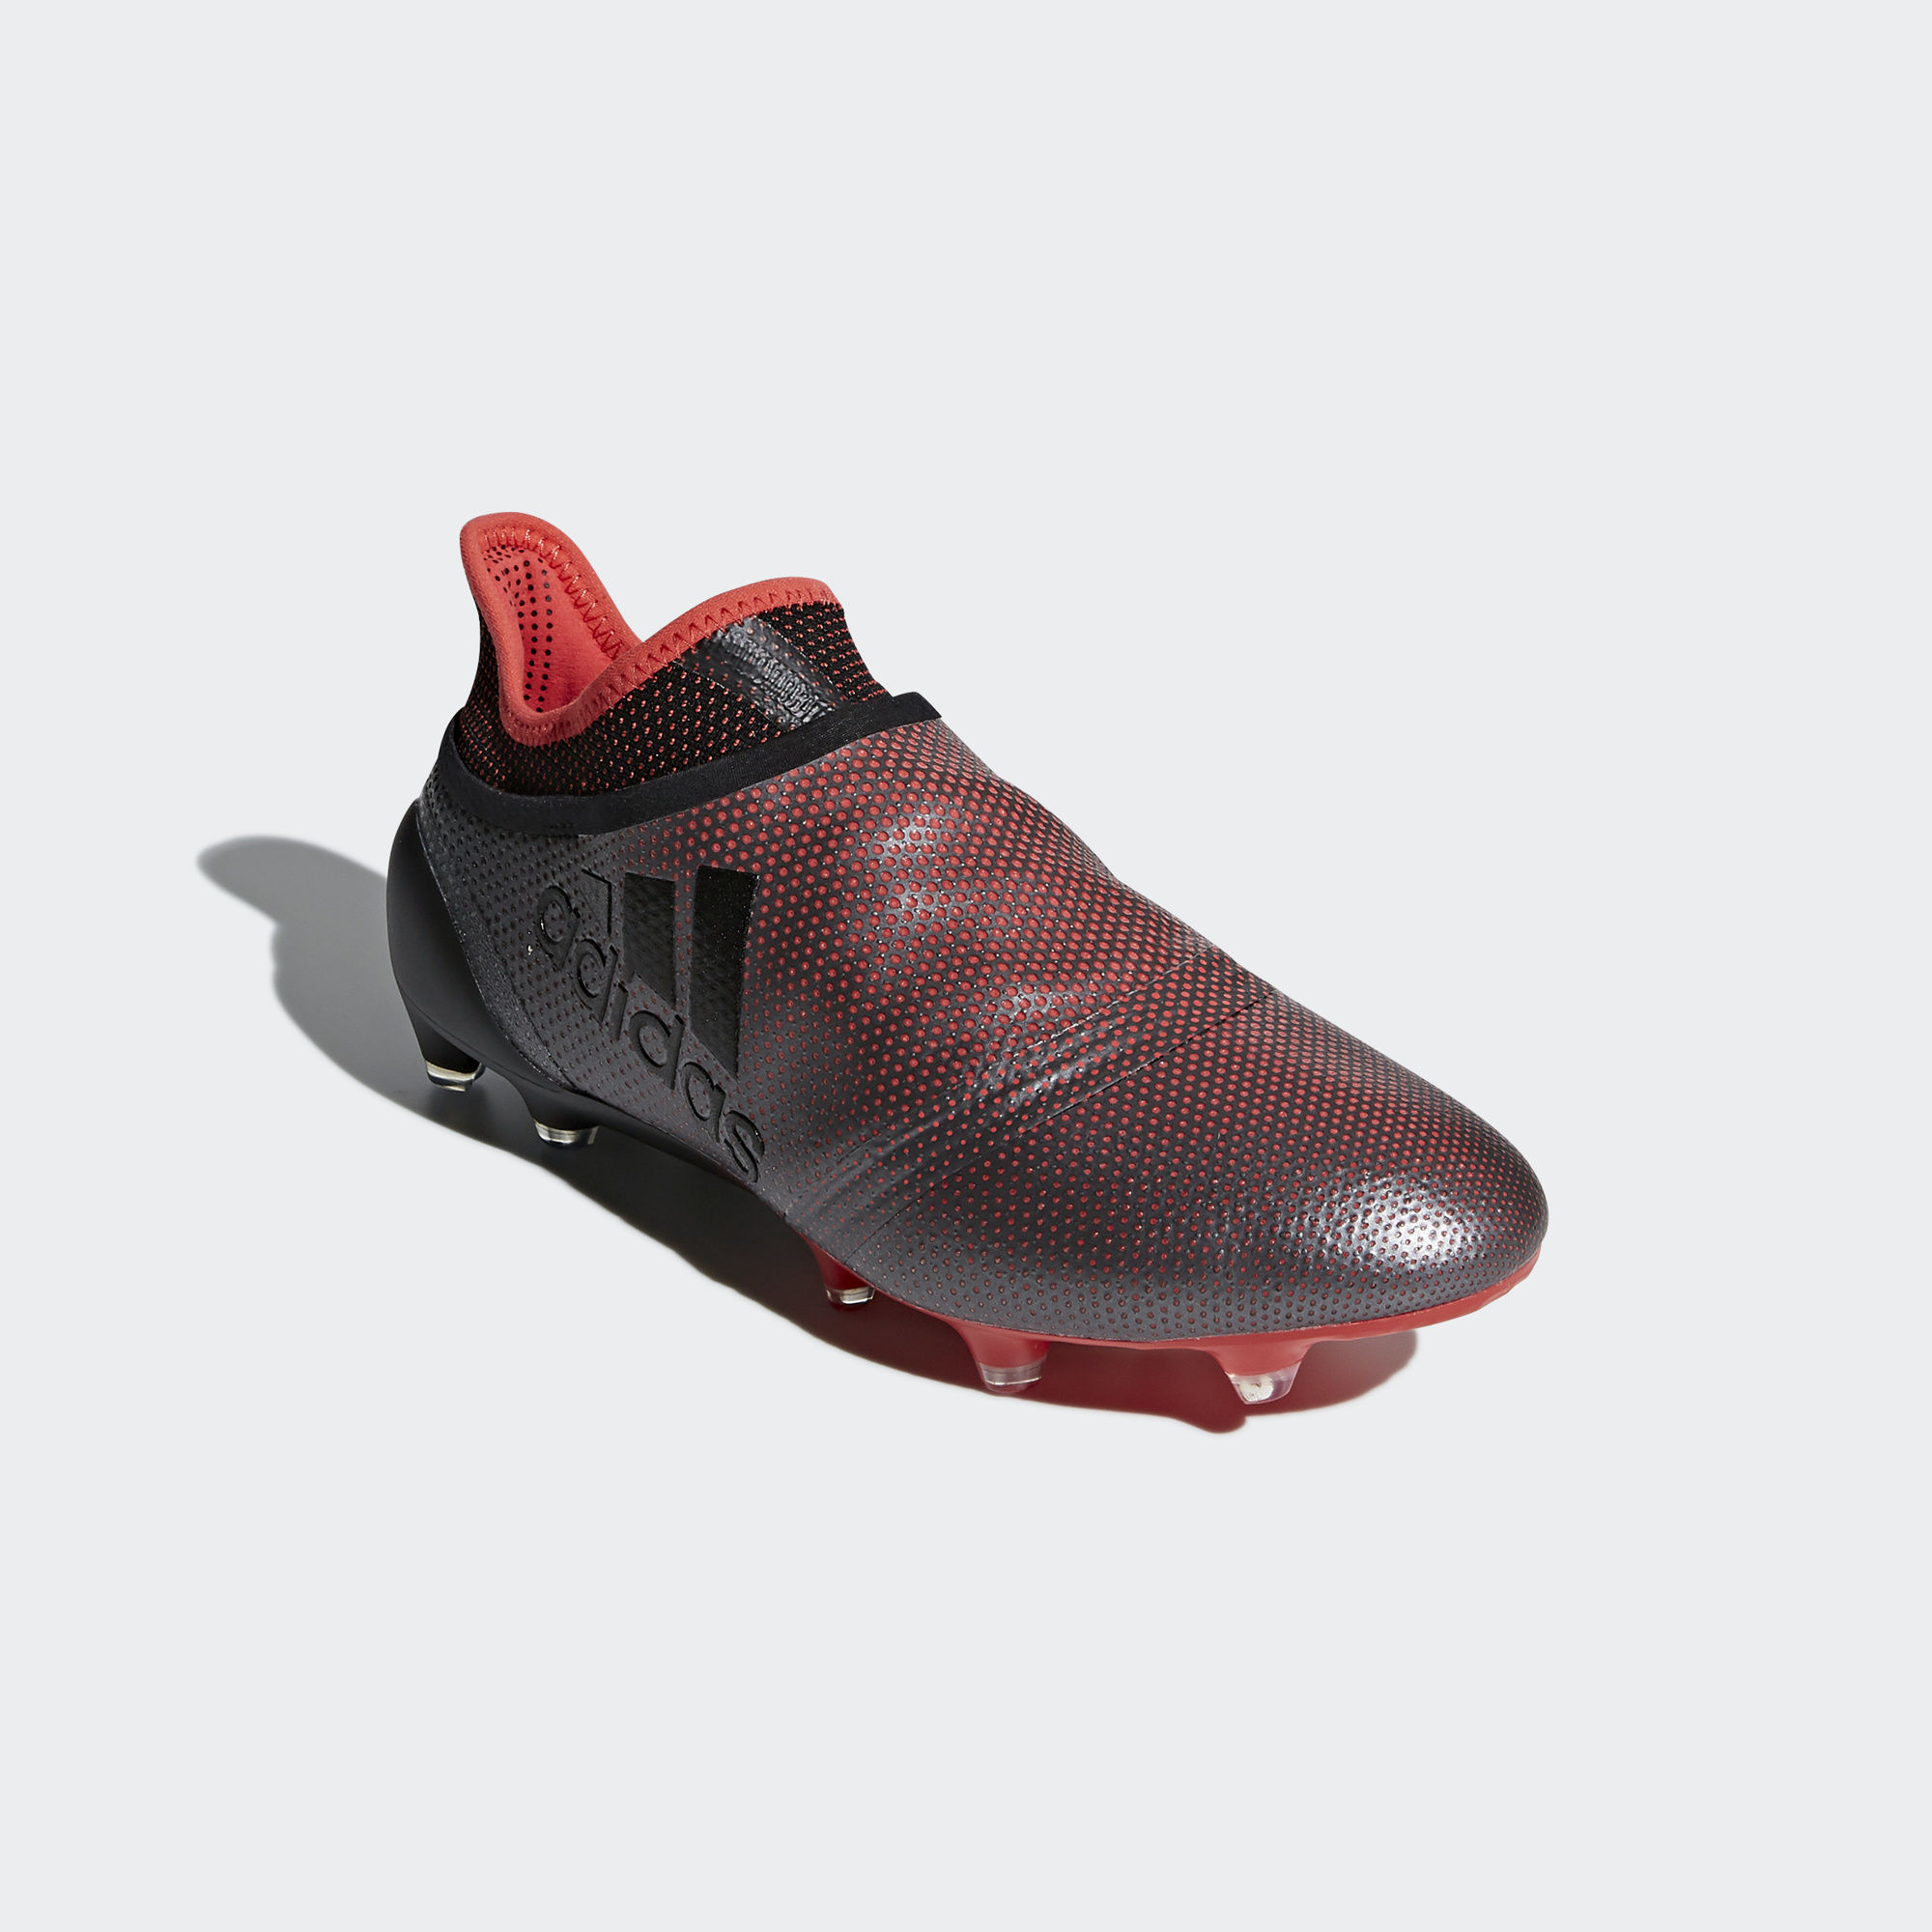 6a67851d9 ... Click to enlarge image  adidas_x_17_purespeed_fg_cold_blooded_grey_core_black_real_coral_d.jpg ...